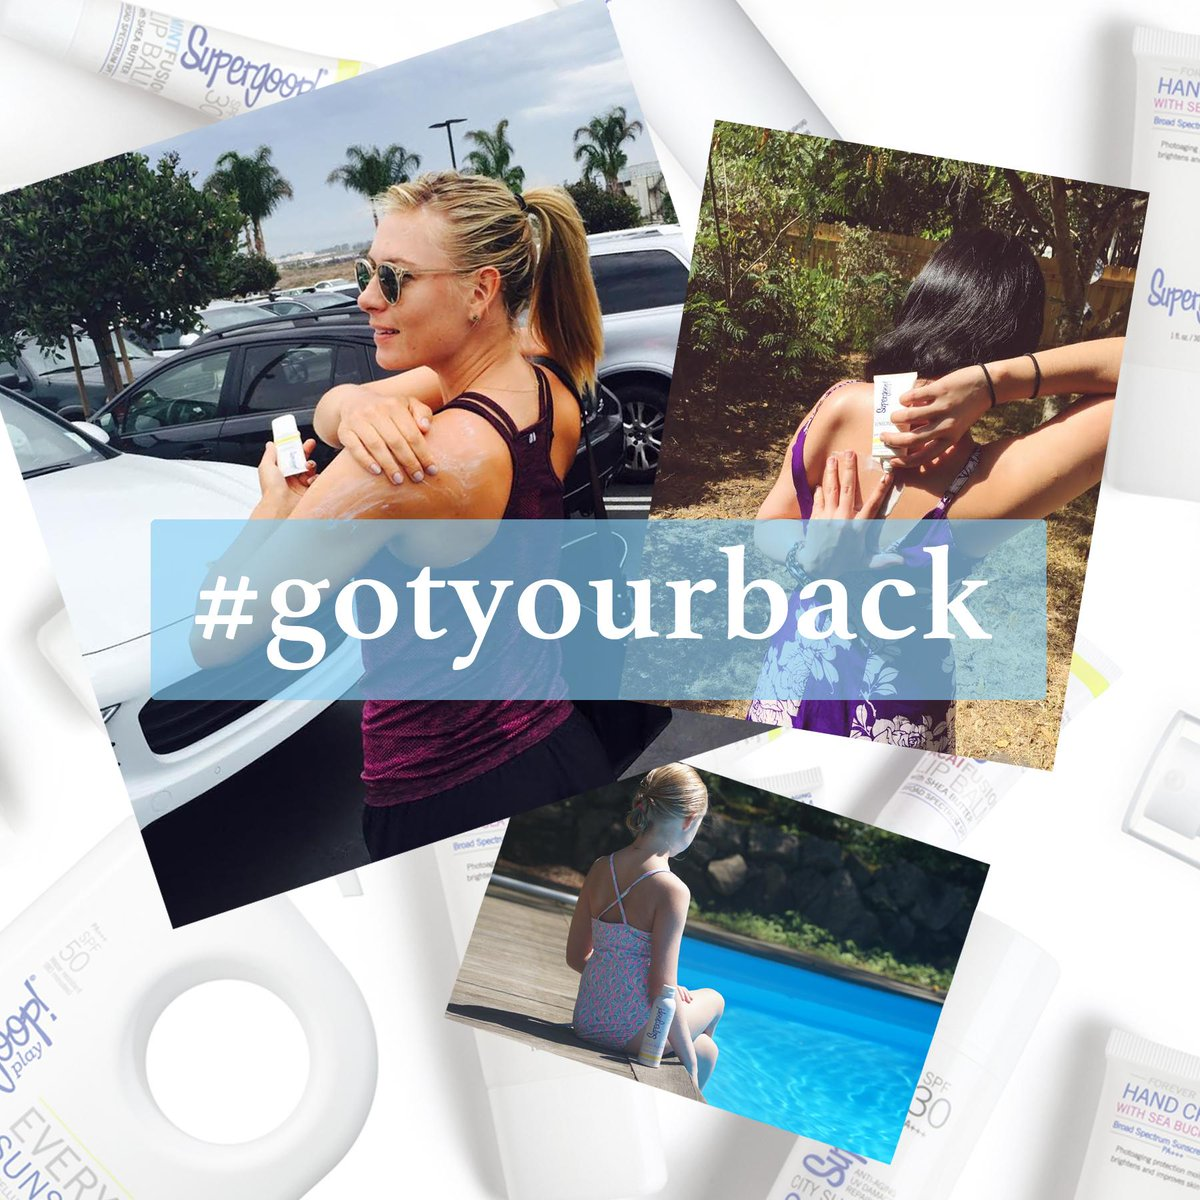 Show me how you #GotYourBack tag @Supergoop  for a chance to win a prize full of signed gear and suncare! http://t.co/s2jYiLXjJy